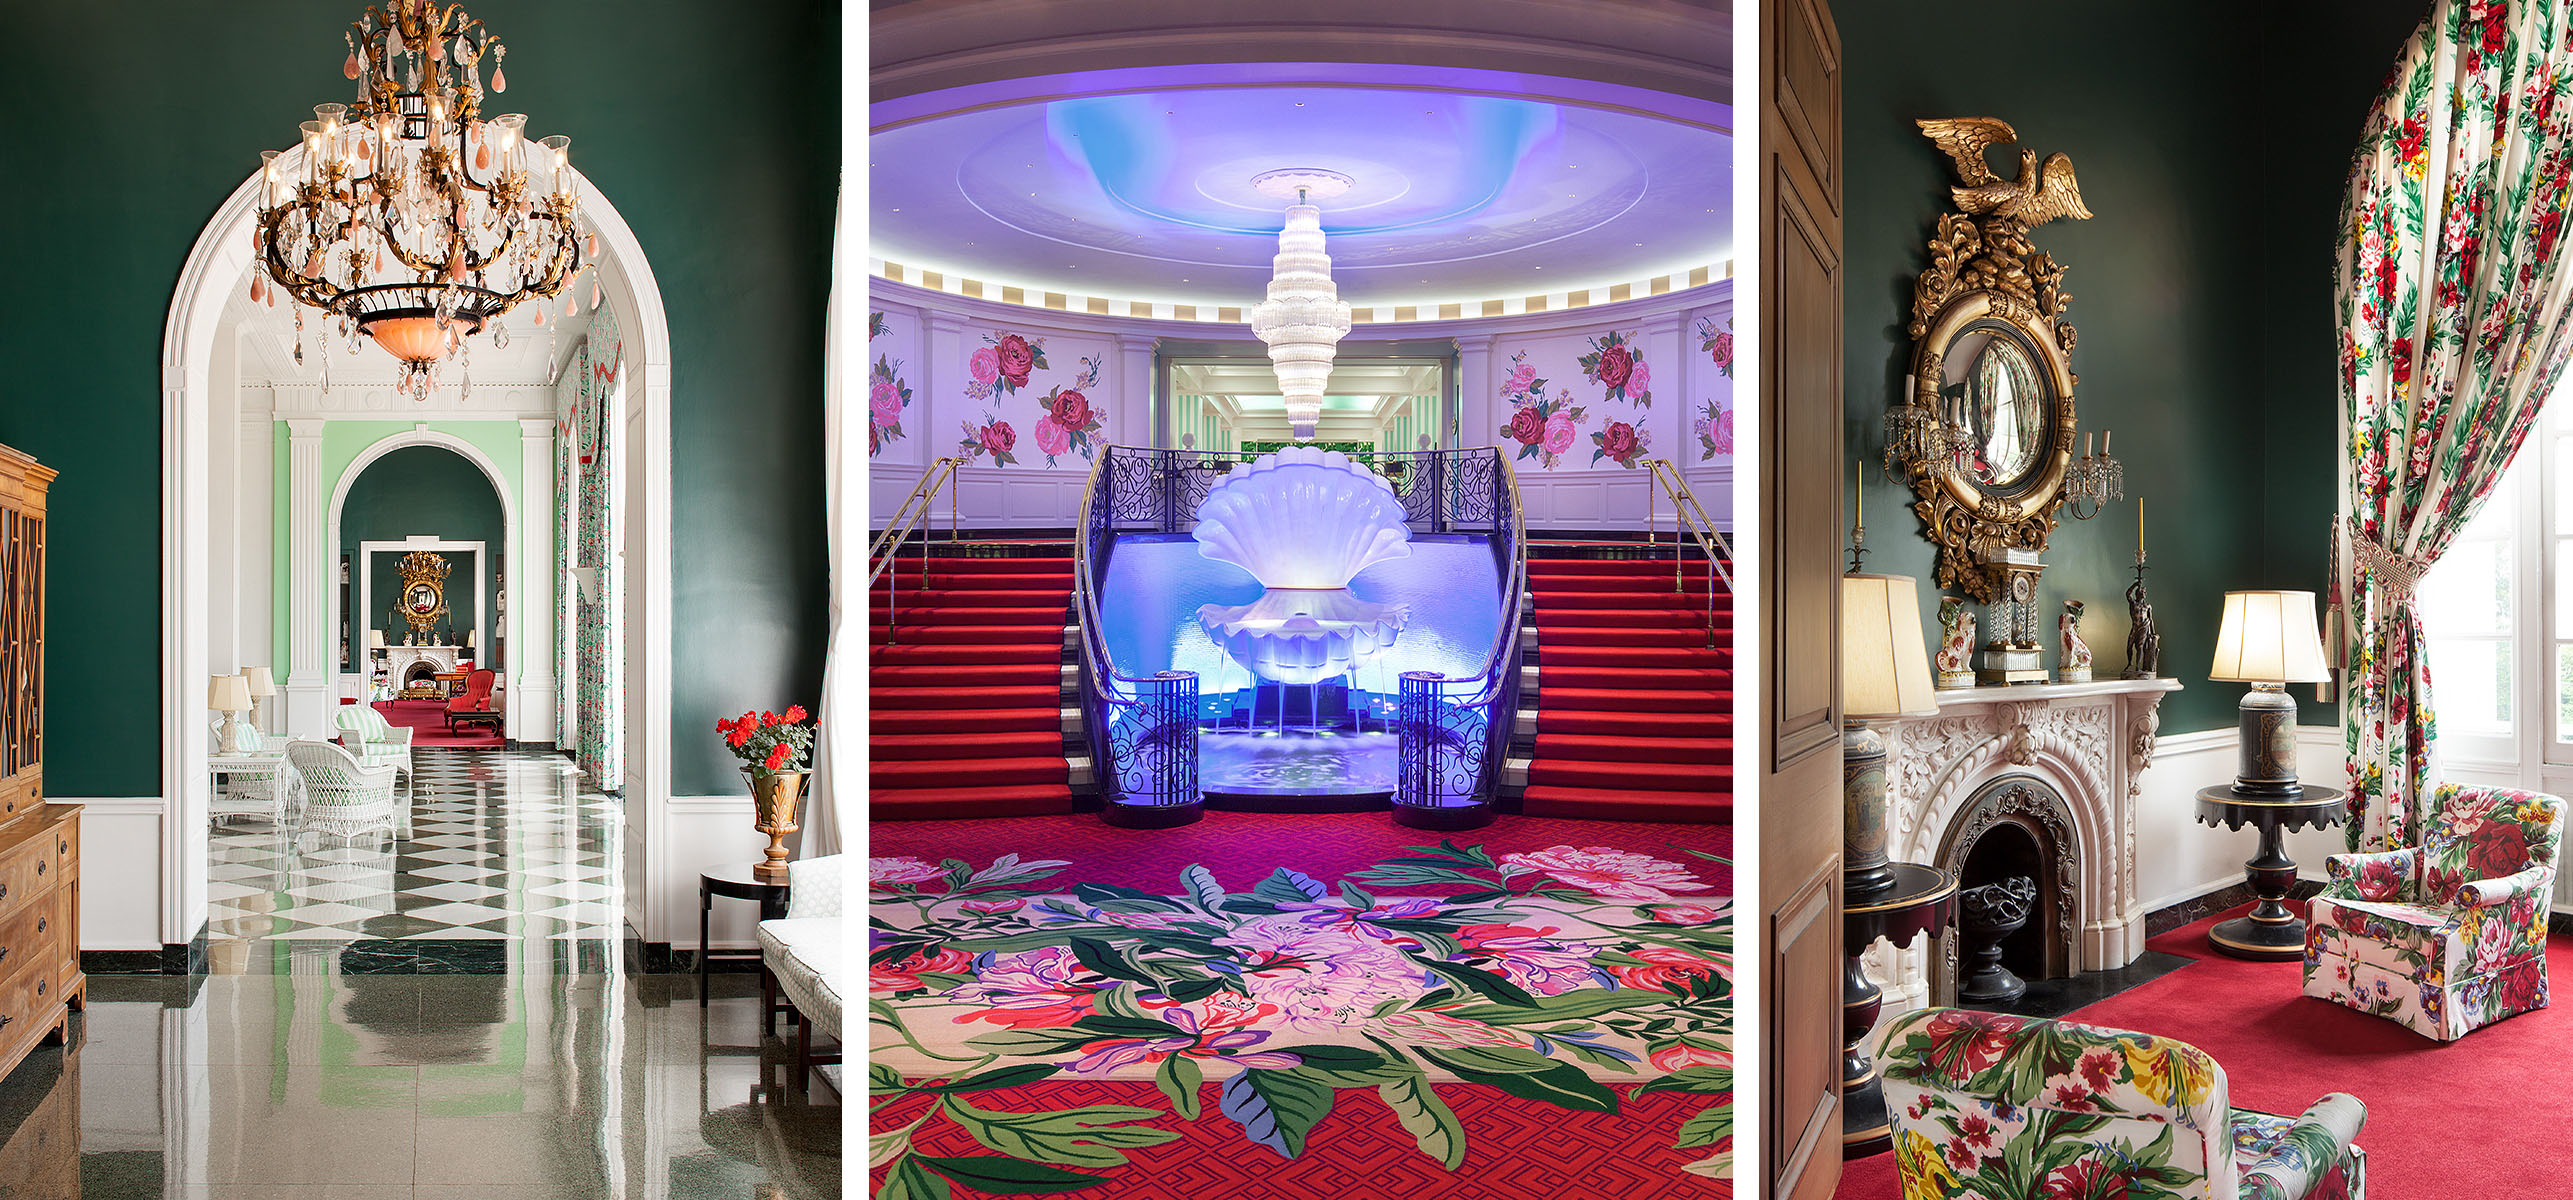 The GreenbrierWhite Sulphur Springs, WVIconic interior design by Dorothy Draper,revisioned by Carlton Varney